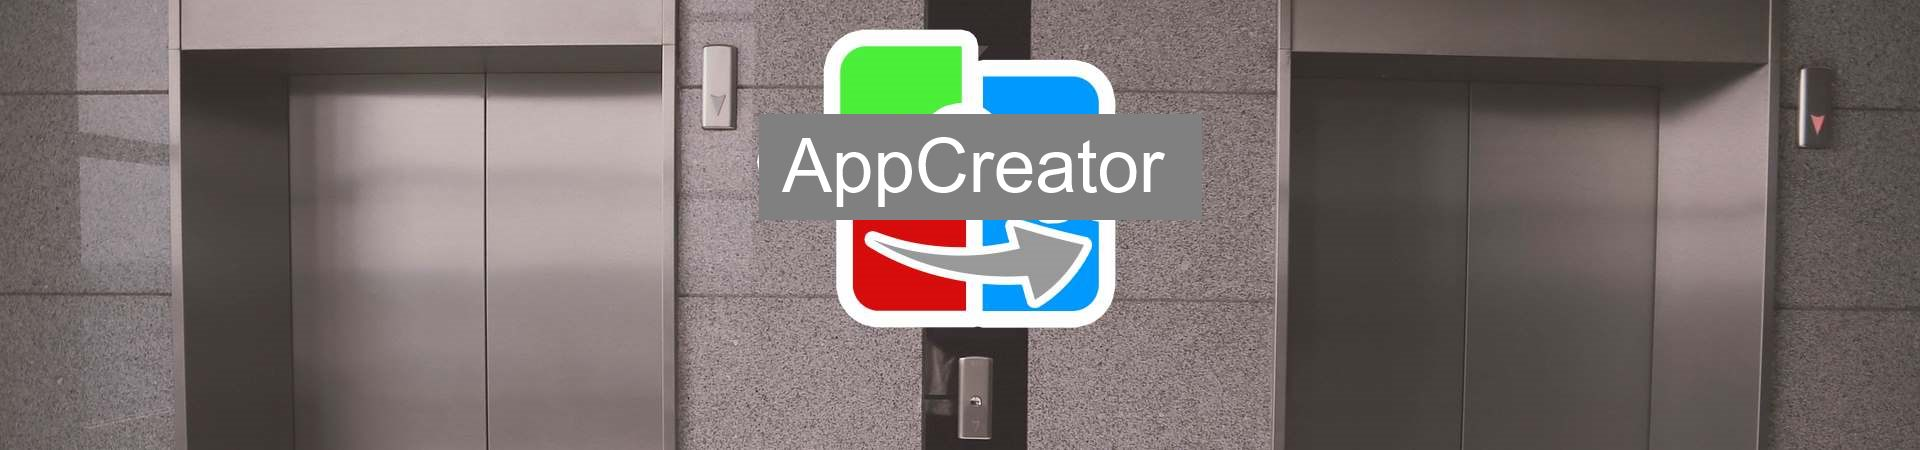 AppCreator tries to participate at Elevator Pitch BW 2016 in Böblingen feature image